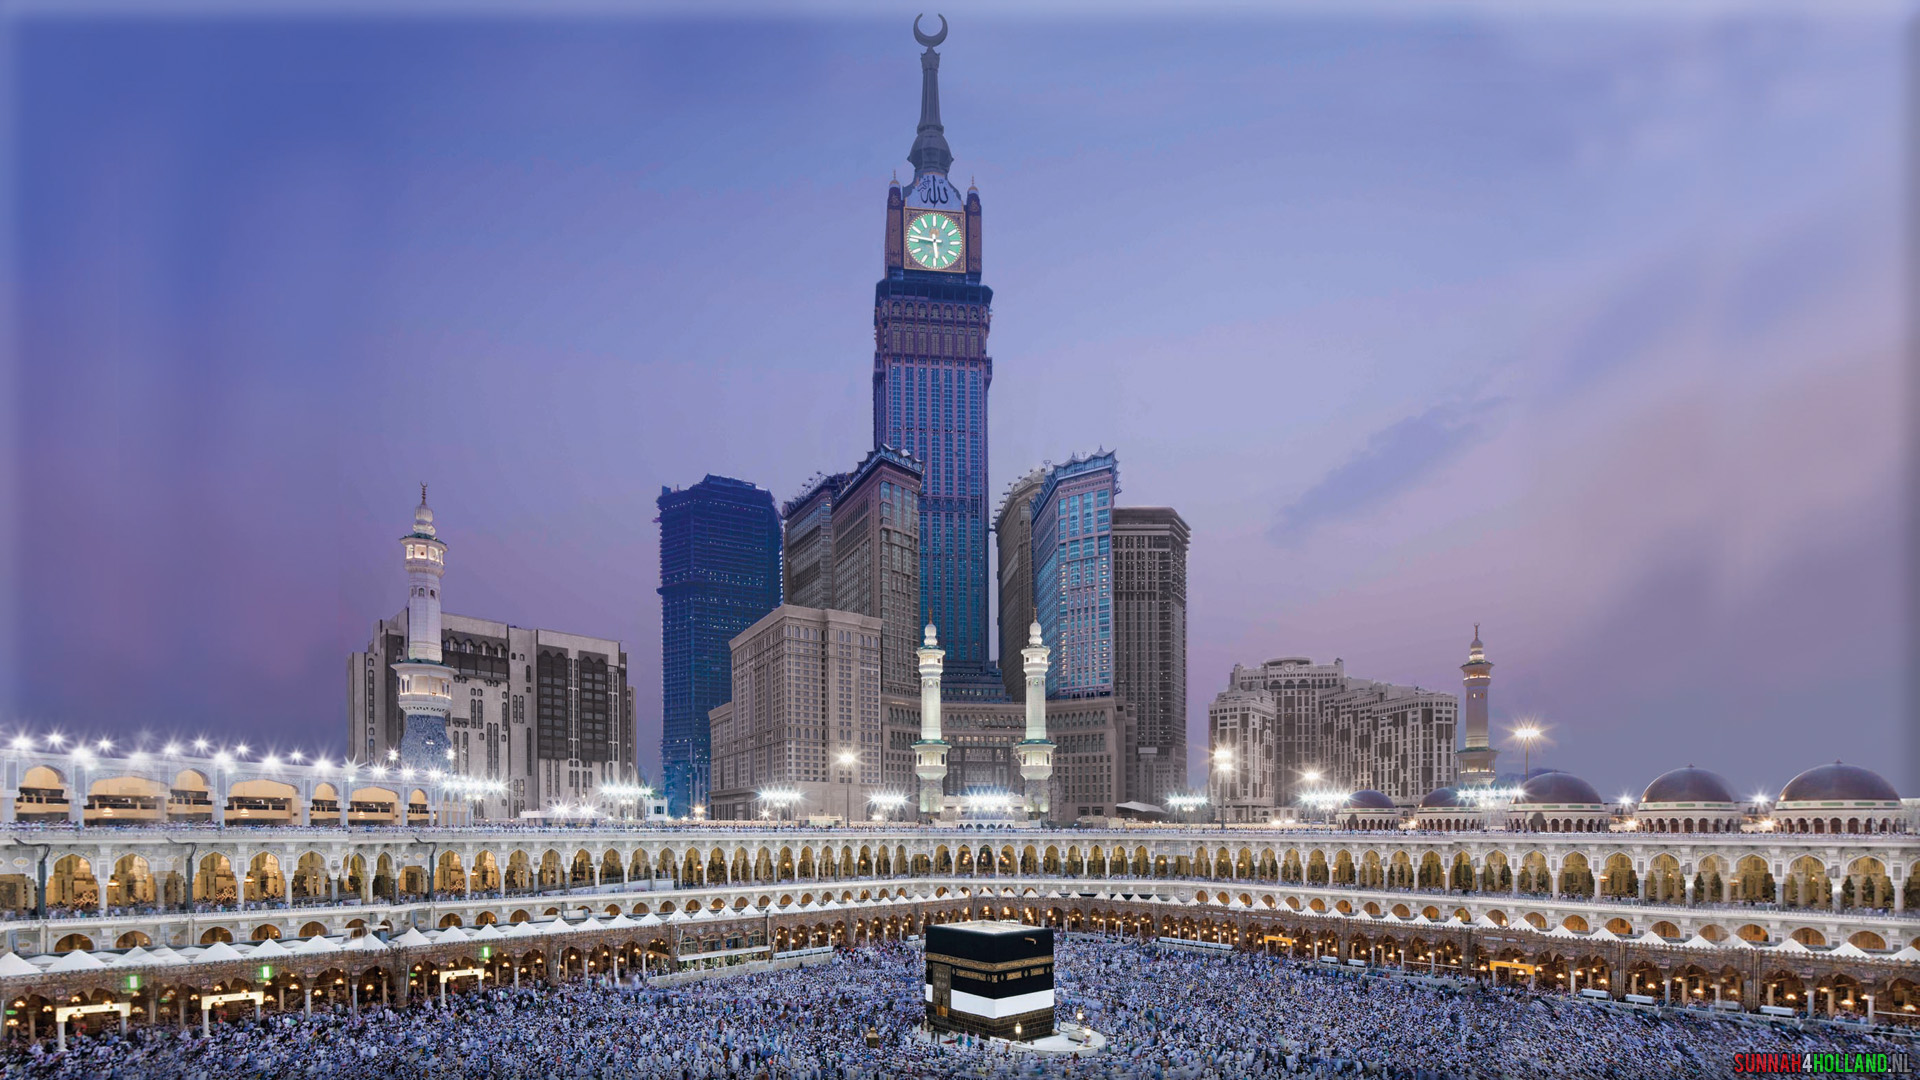 Makkah Wallpaper And Clock Tower Computer